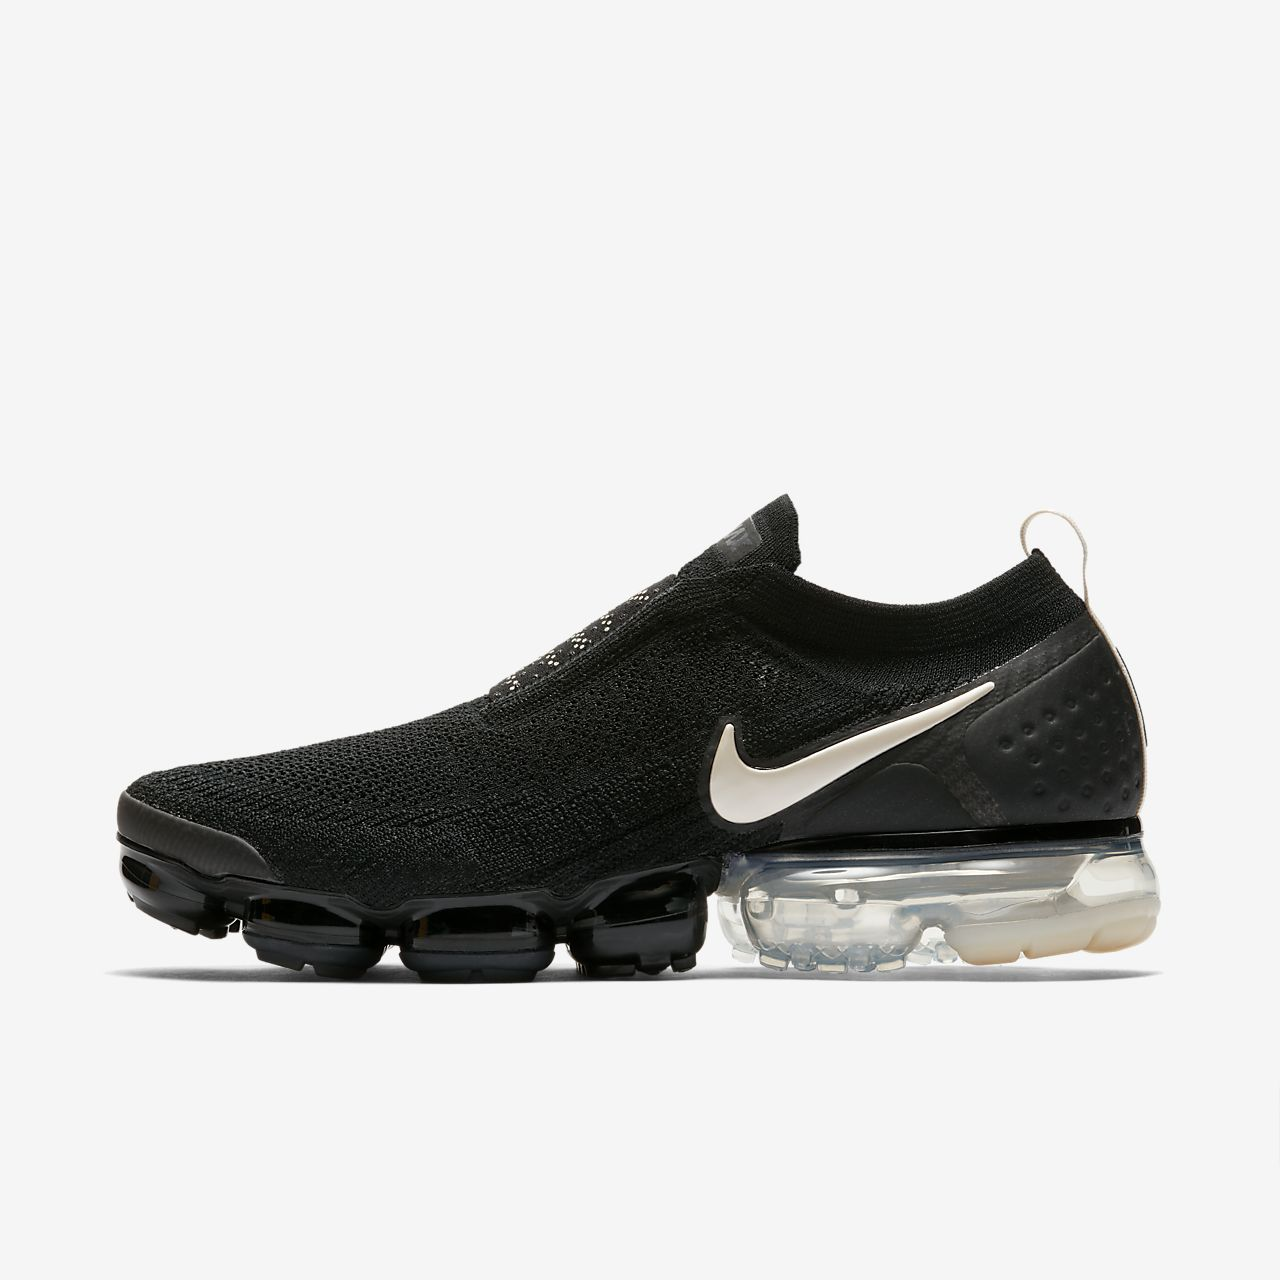 innovative design 4cba3 9e975 Shoe. Nike Air VaporMax Flyknit Moc 2